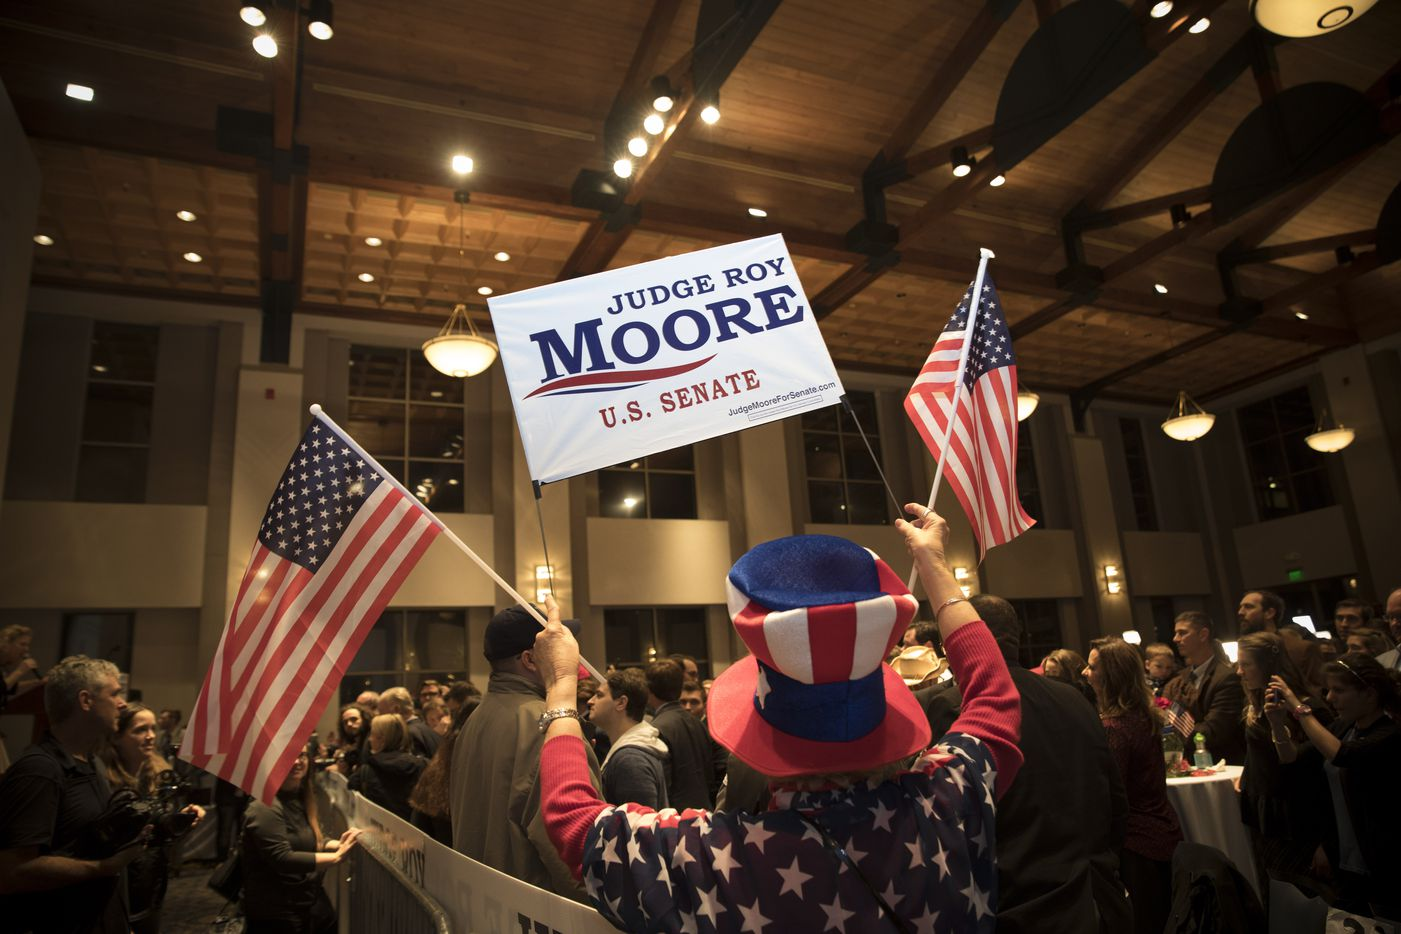 A supporter of Roy Moore, the Republican candidate for U.S. Senate, at an election-night party in Montgomery, Ala., Dec. 12, 2017. Alabama voters went to the polls Tuesday to decide between Roy Moore, a Republican, and Doug Jones, a Democrat, in a special Senate election destined to be remembered as a strange and ugly campaign carrying immense political implications. (Audra Melton/The New York Times)